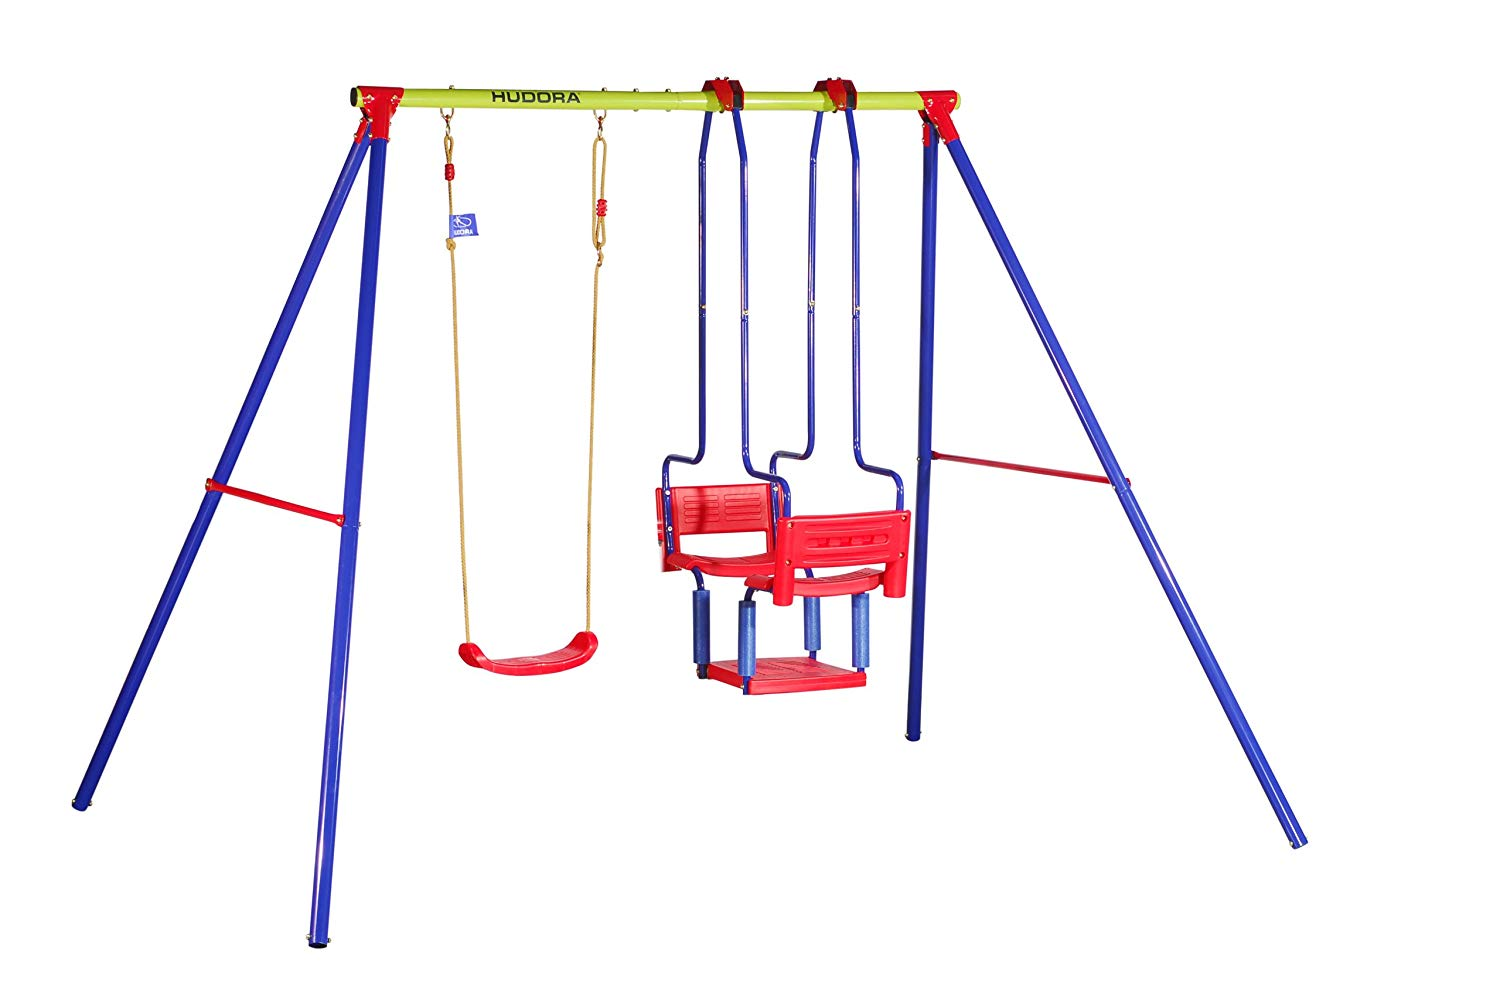 Lot 11 - Hudora HD 700 Swing Set - Flat Packed RRP £279.99